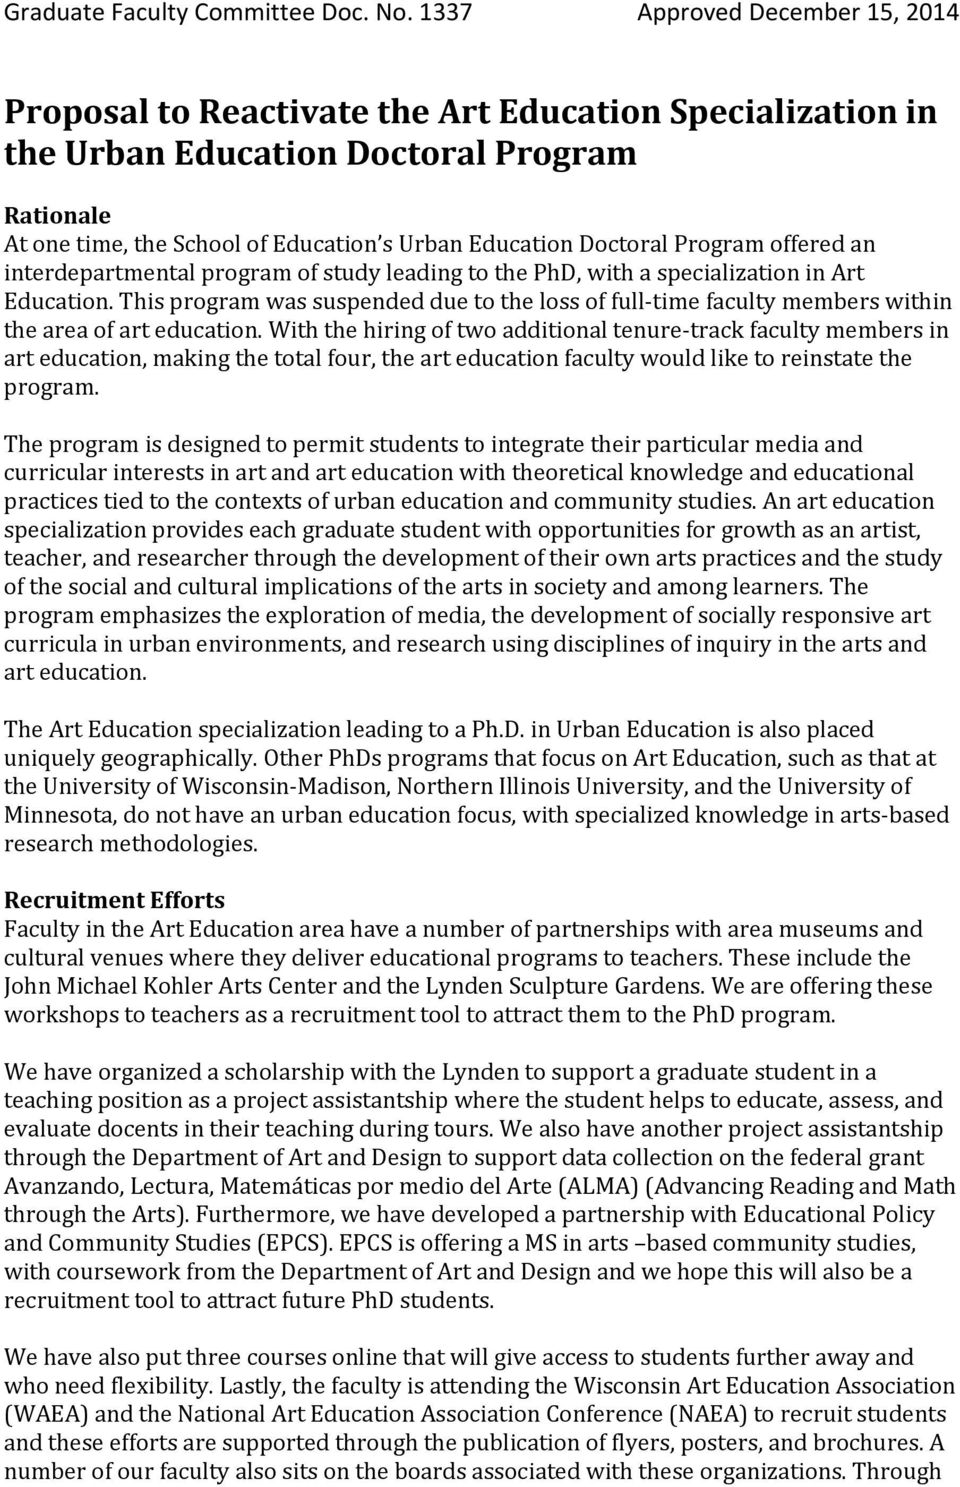 Doctoral Program offered an interdepartmental program of study leading to the PhD, with a specialization in Art Education.